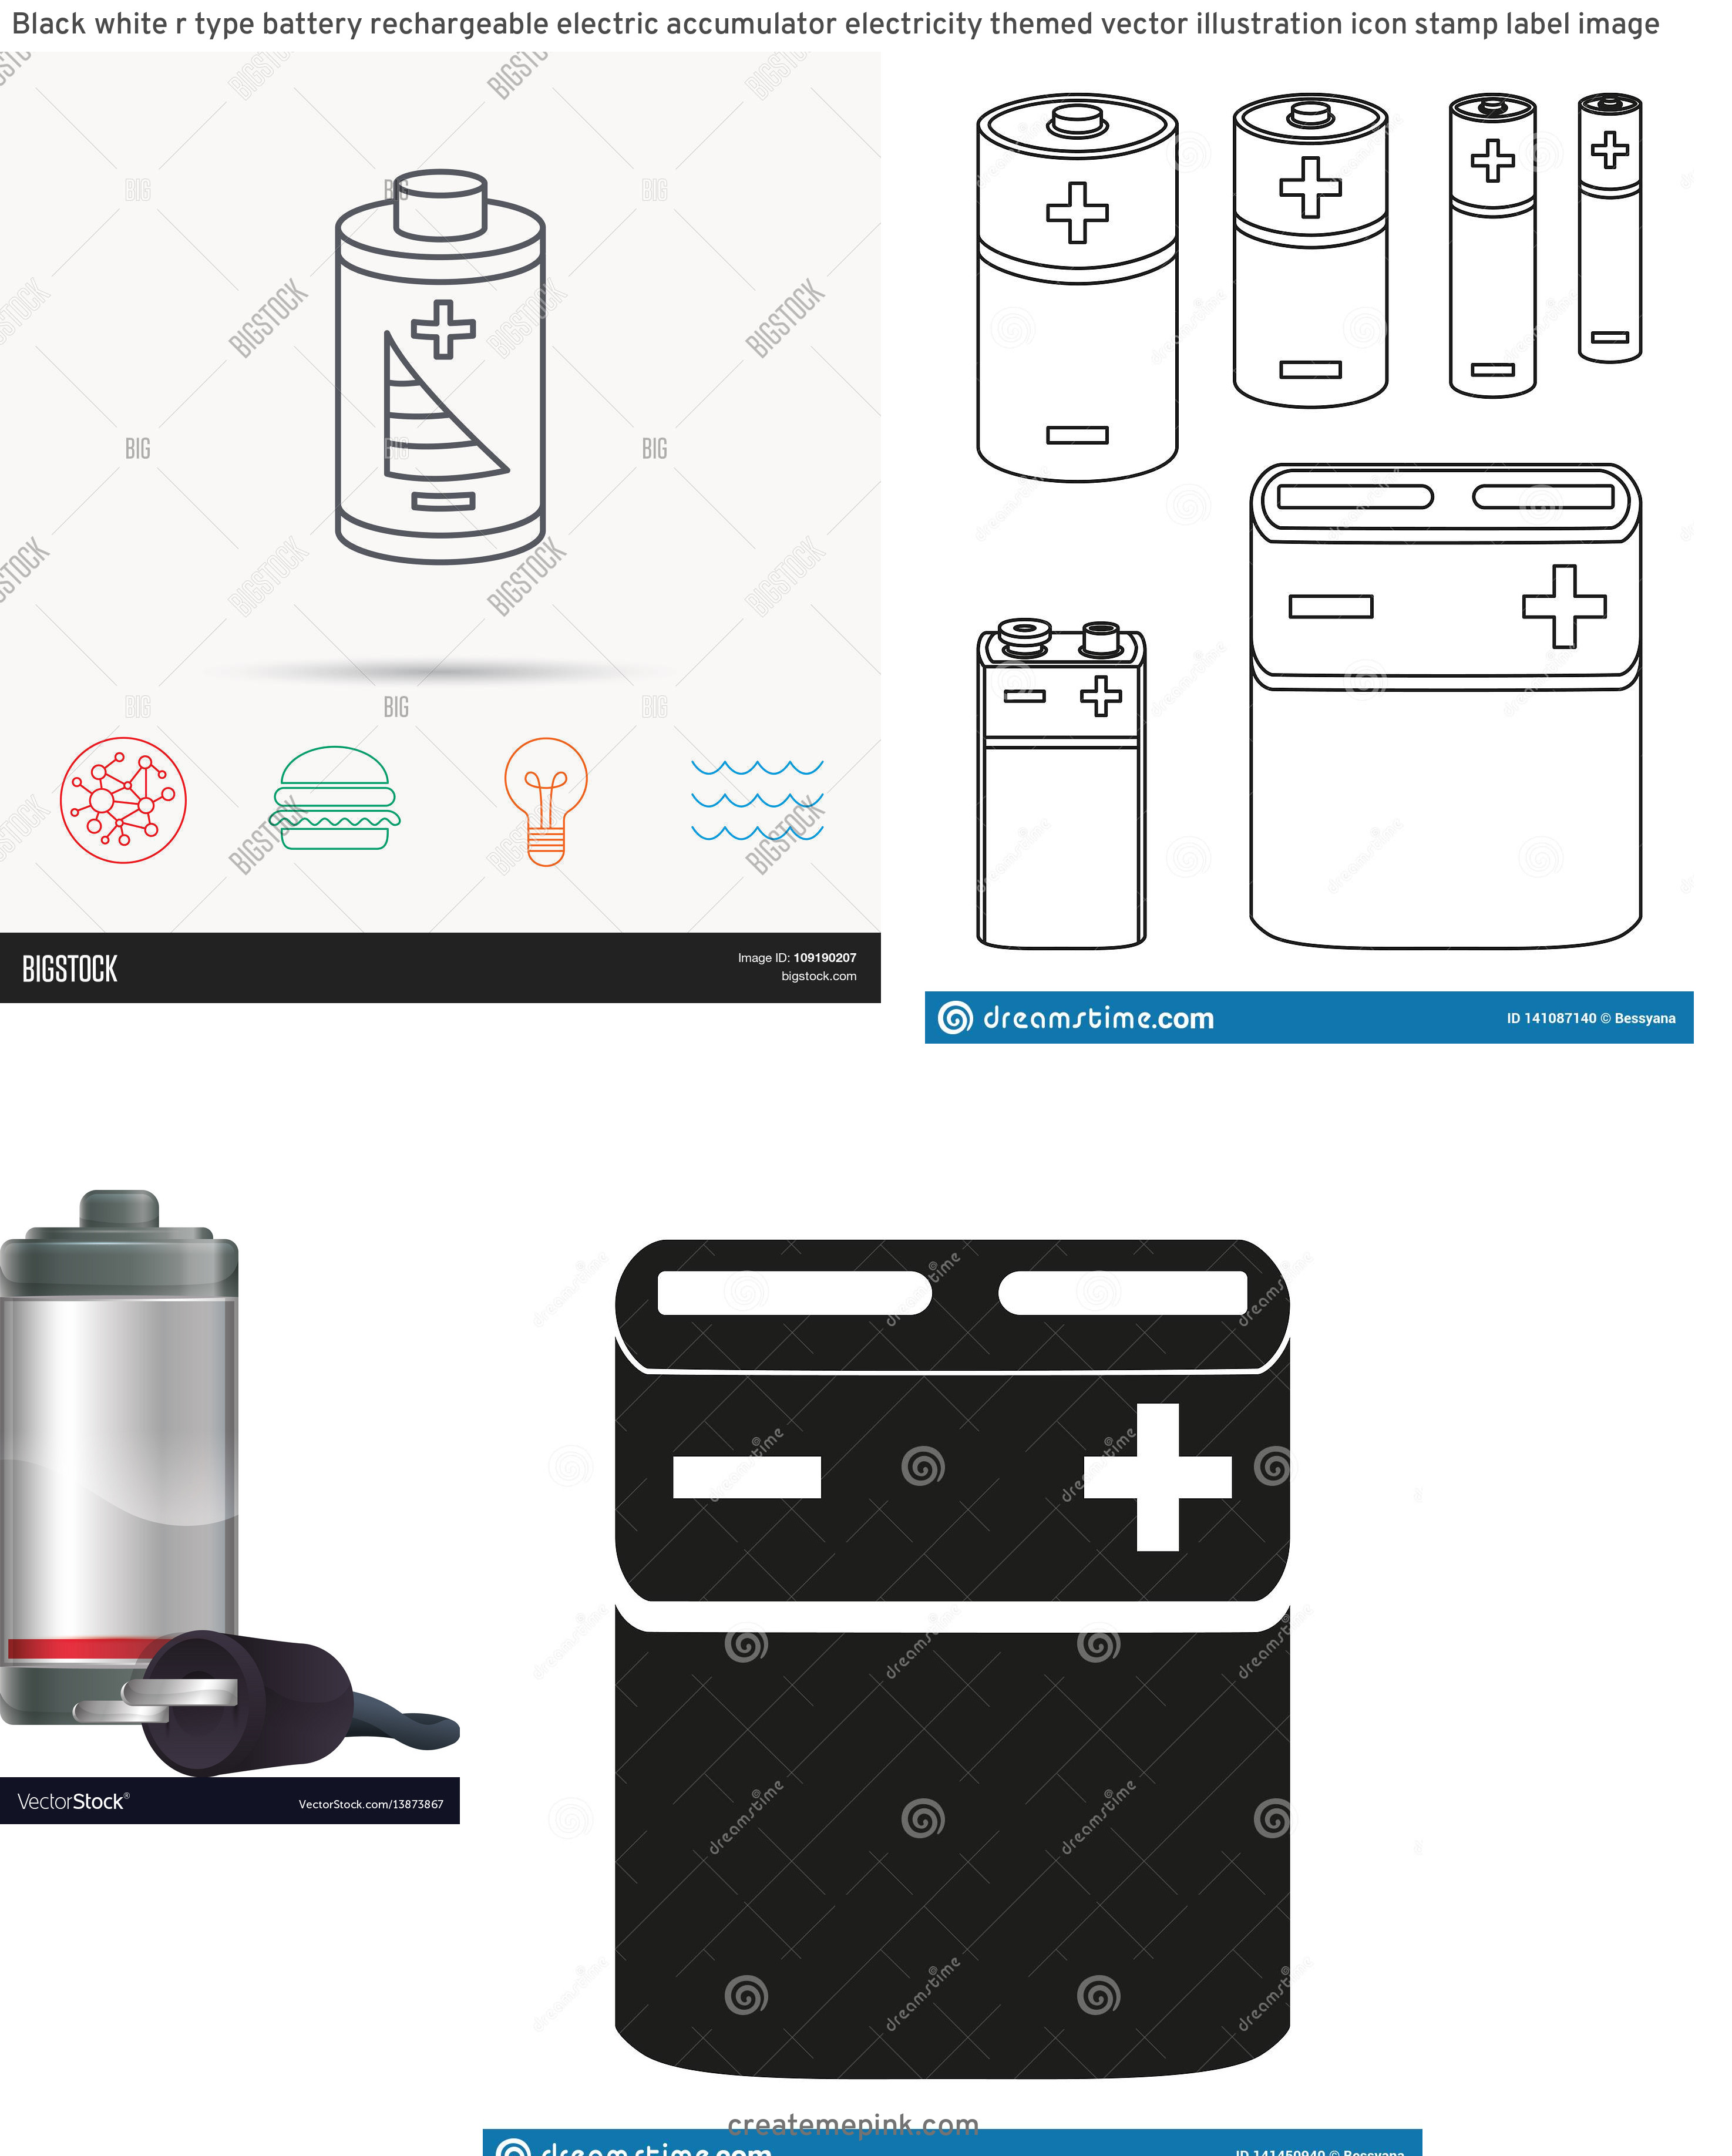 Vector Rechargeable Lamp Battery: Black White R Type Battery Rechargeable Electric Accumulator Electricity Themed Vector Illustration Icon Stamp Label Image